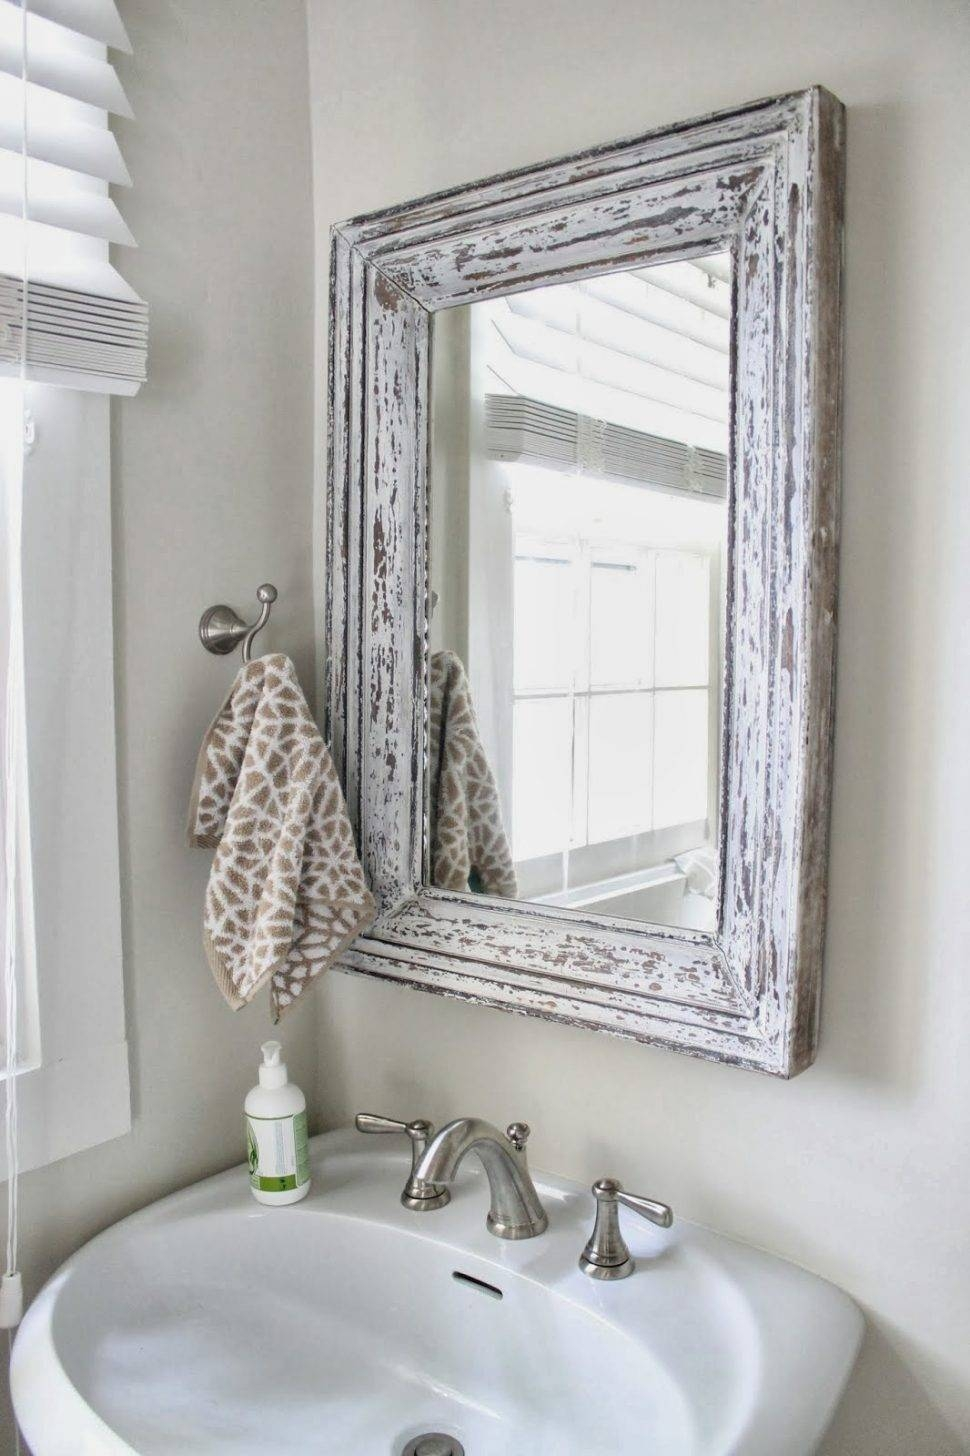 Bathroom Cabinets : Large Bevelled Mirror Decorative Bathroom pertaining to Silver Long Mirrors (Image 4 of 15)